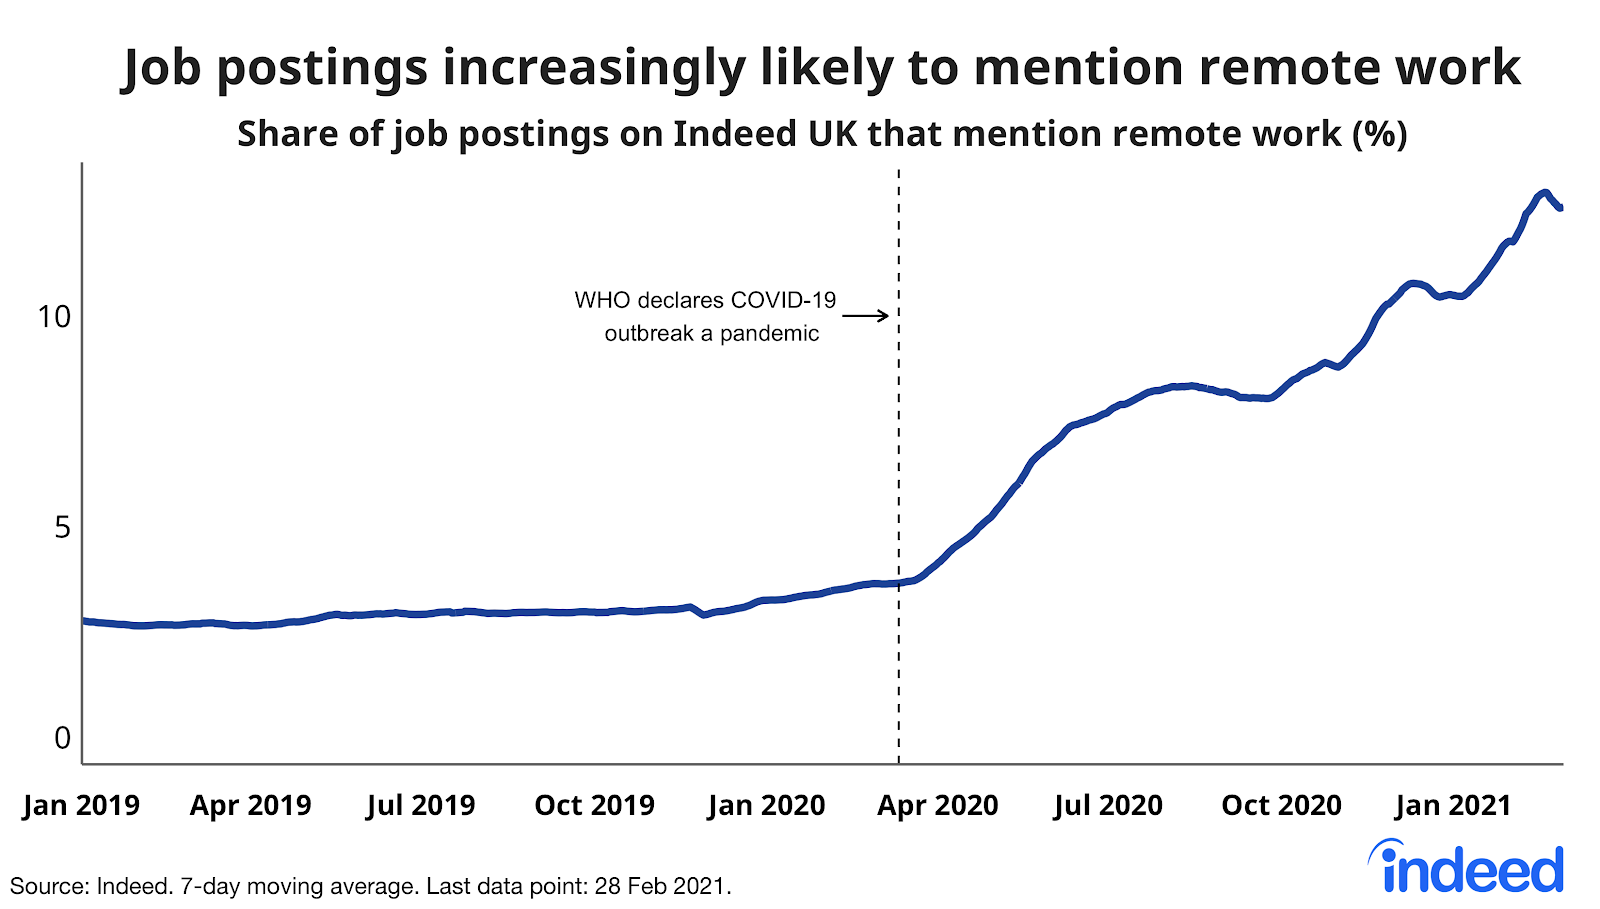 Line graph showing job postings increasingly likely to mention remote work